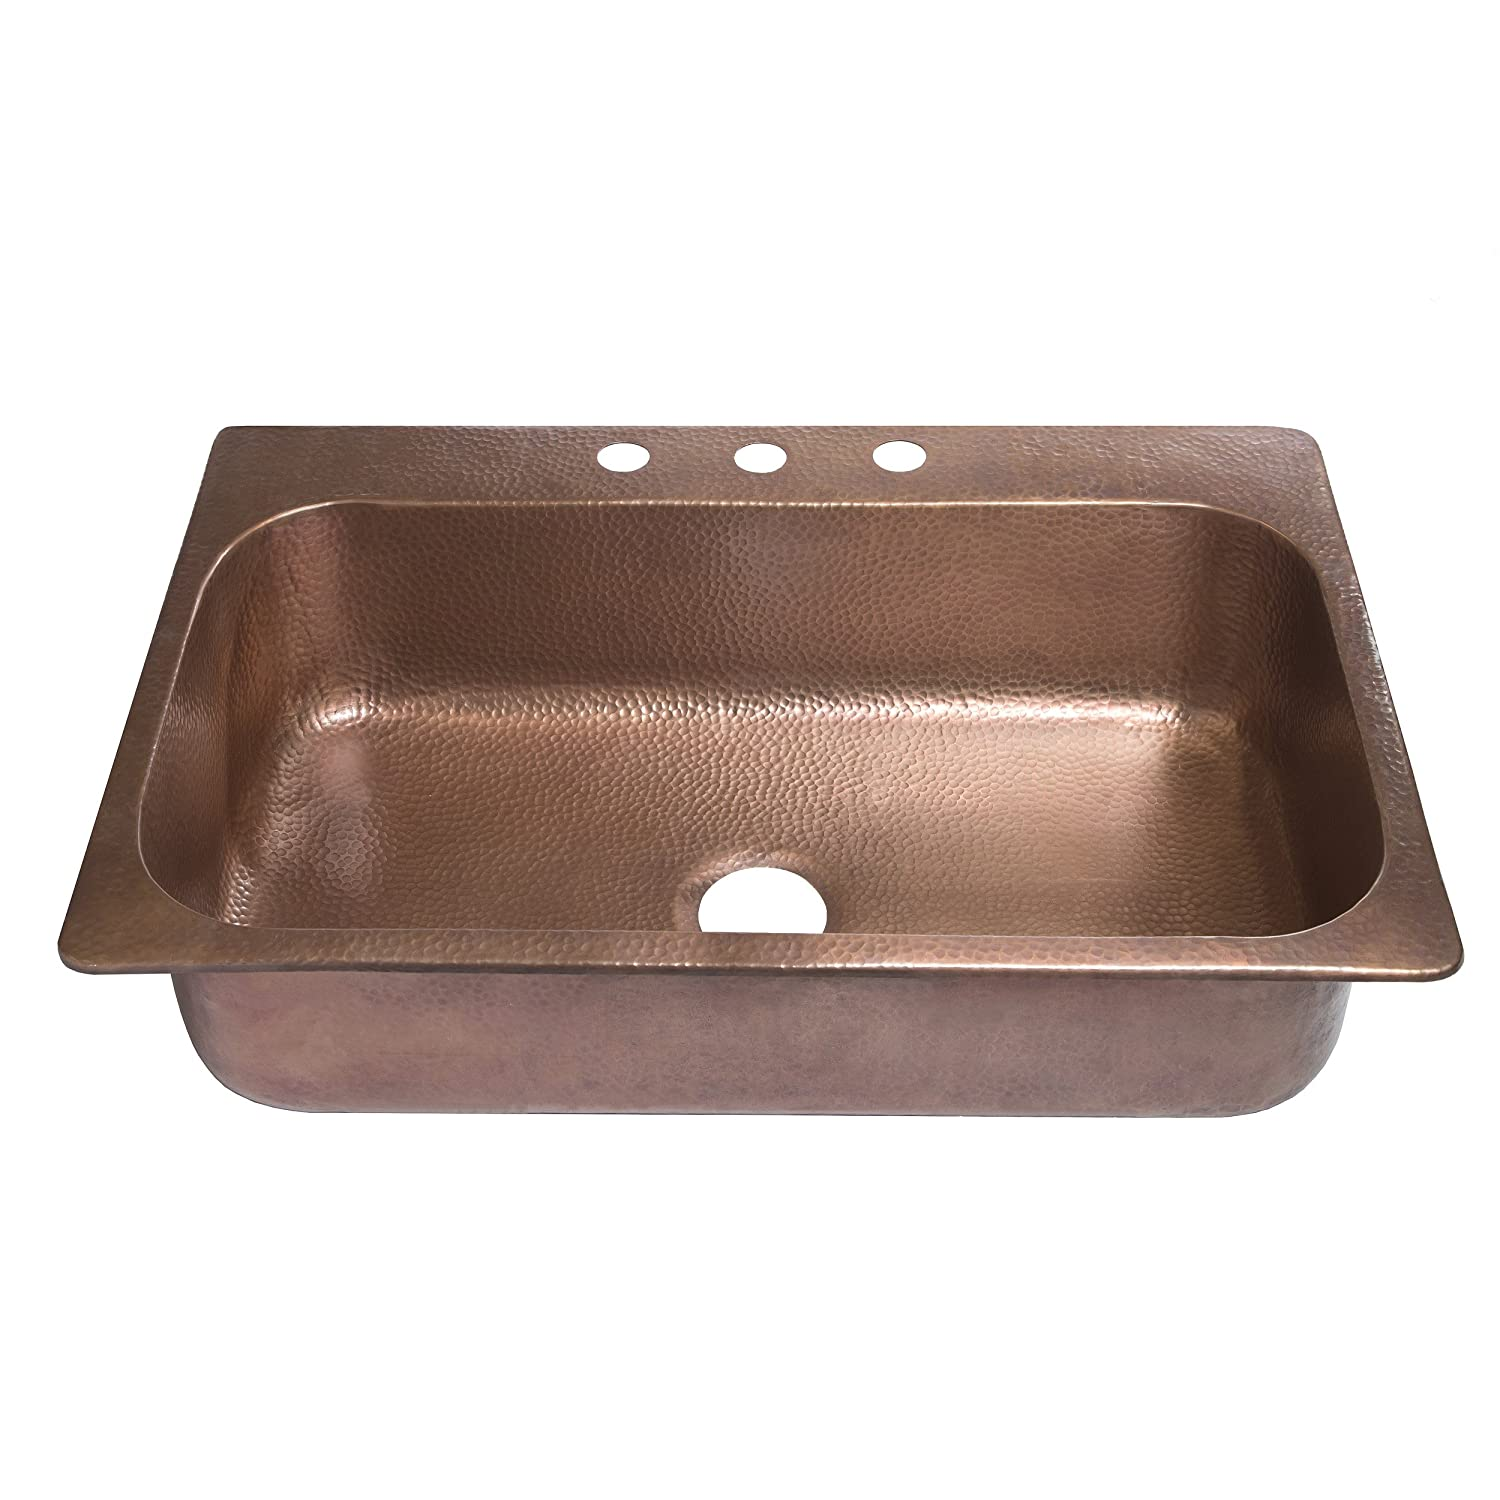 Sinkology SK101-33AC Angelico Drop-In 33-inch 3-Hole Single Bowl Copper Kitchen Sink